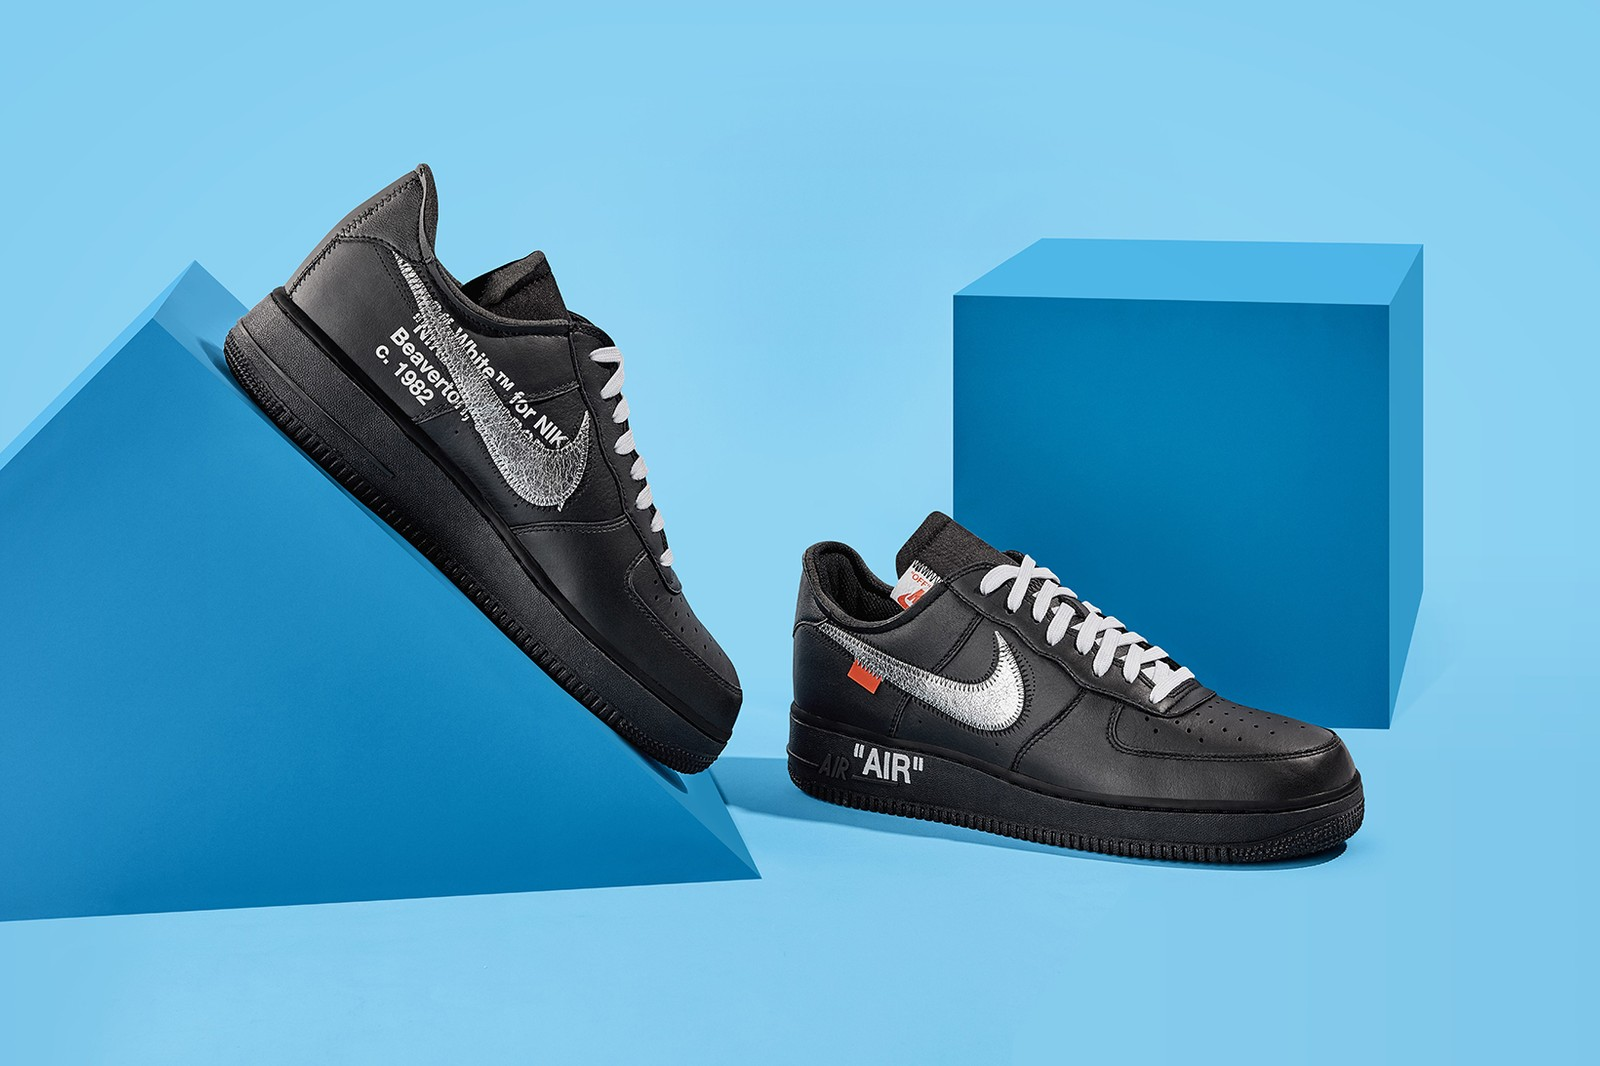 9 Sneakers Highest Resale Value 2019 the realreal hyped valuable footwear yeezy kanye west virgil abloh air jordan 1 air max futura sb nike off-white converse